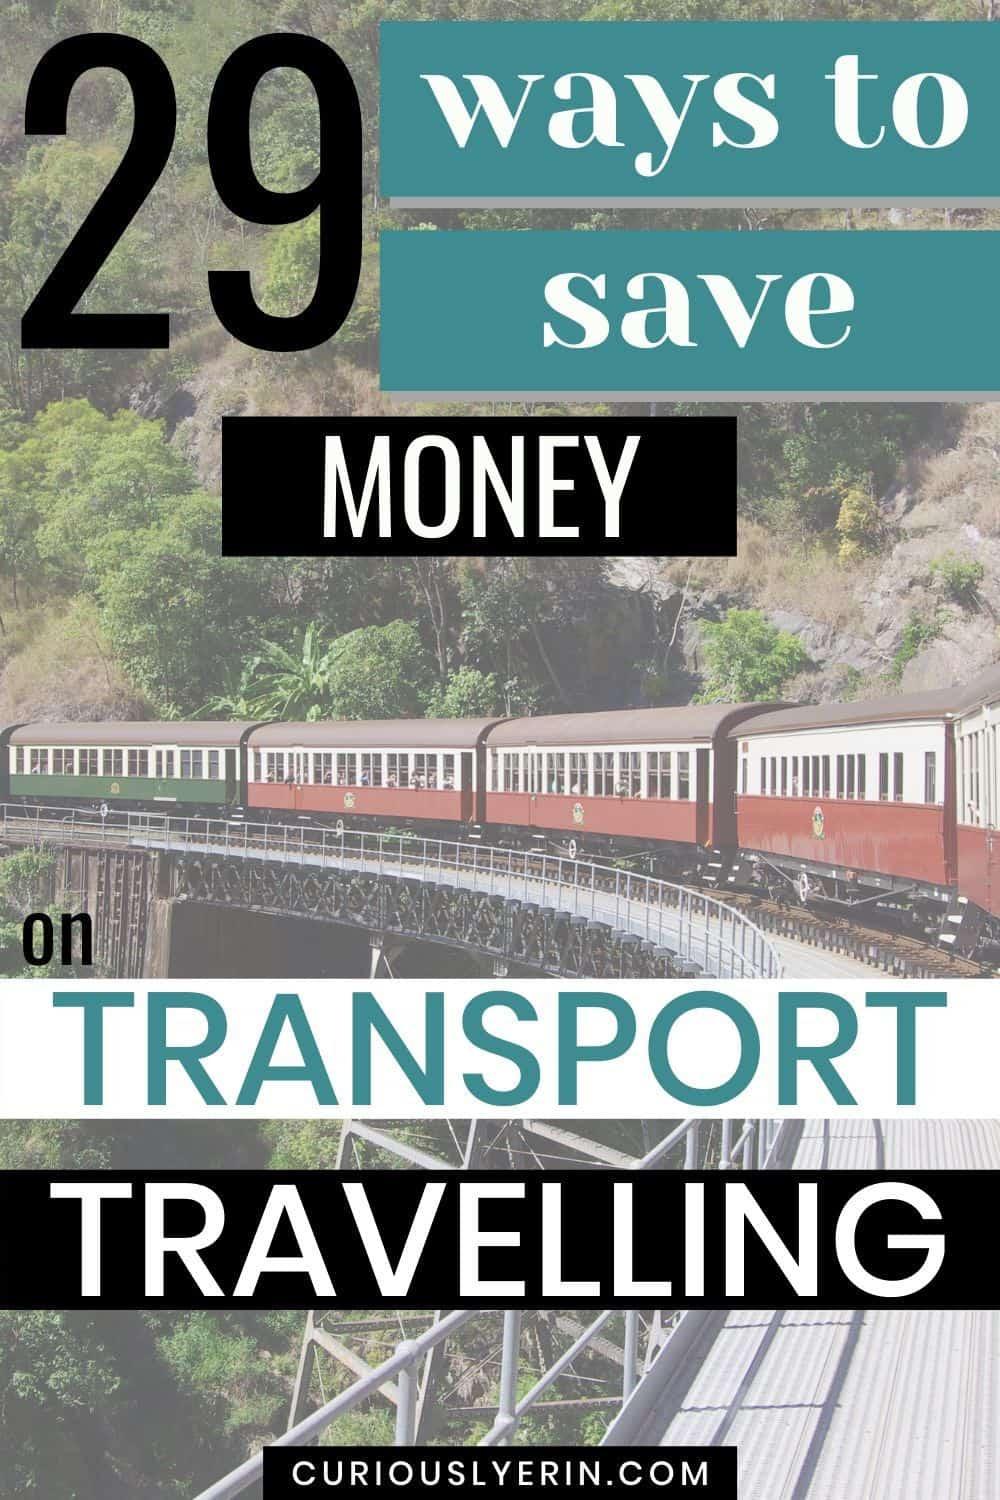 Travelling and Transportation: Implement These 29 Ways to Save Money